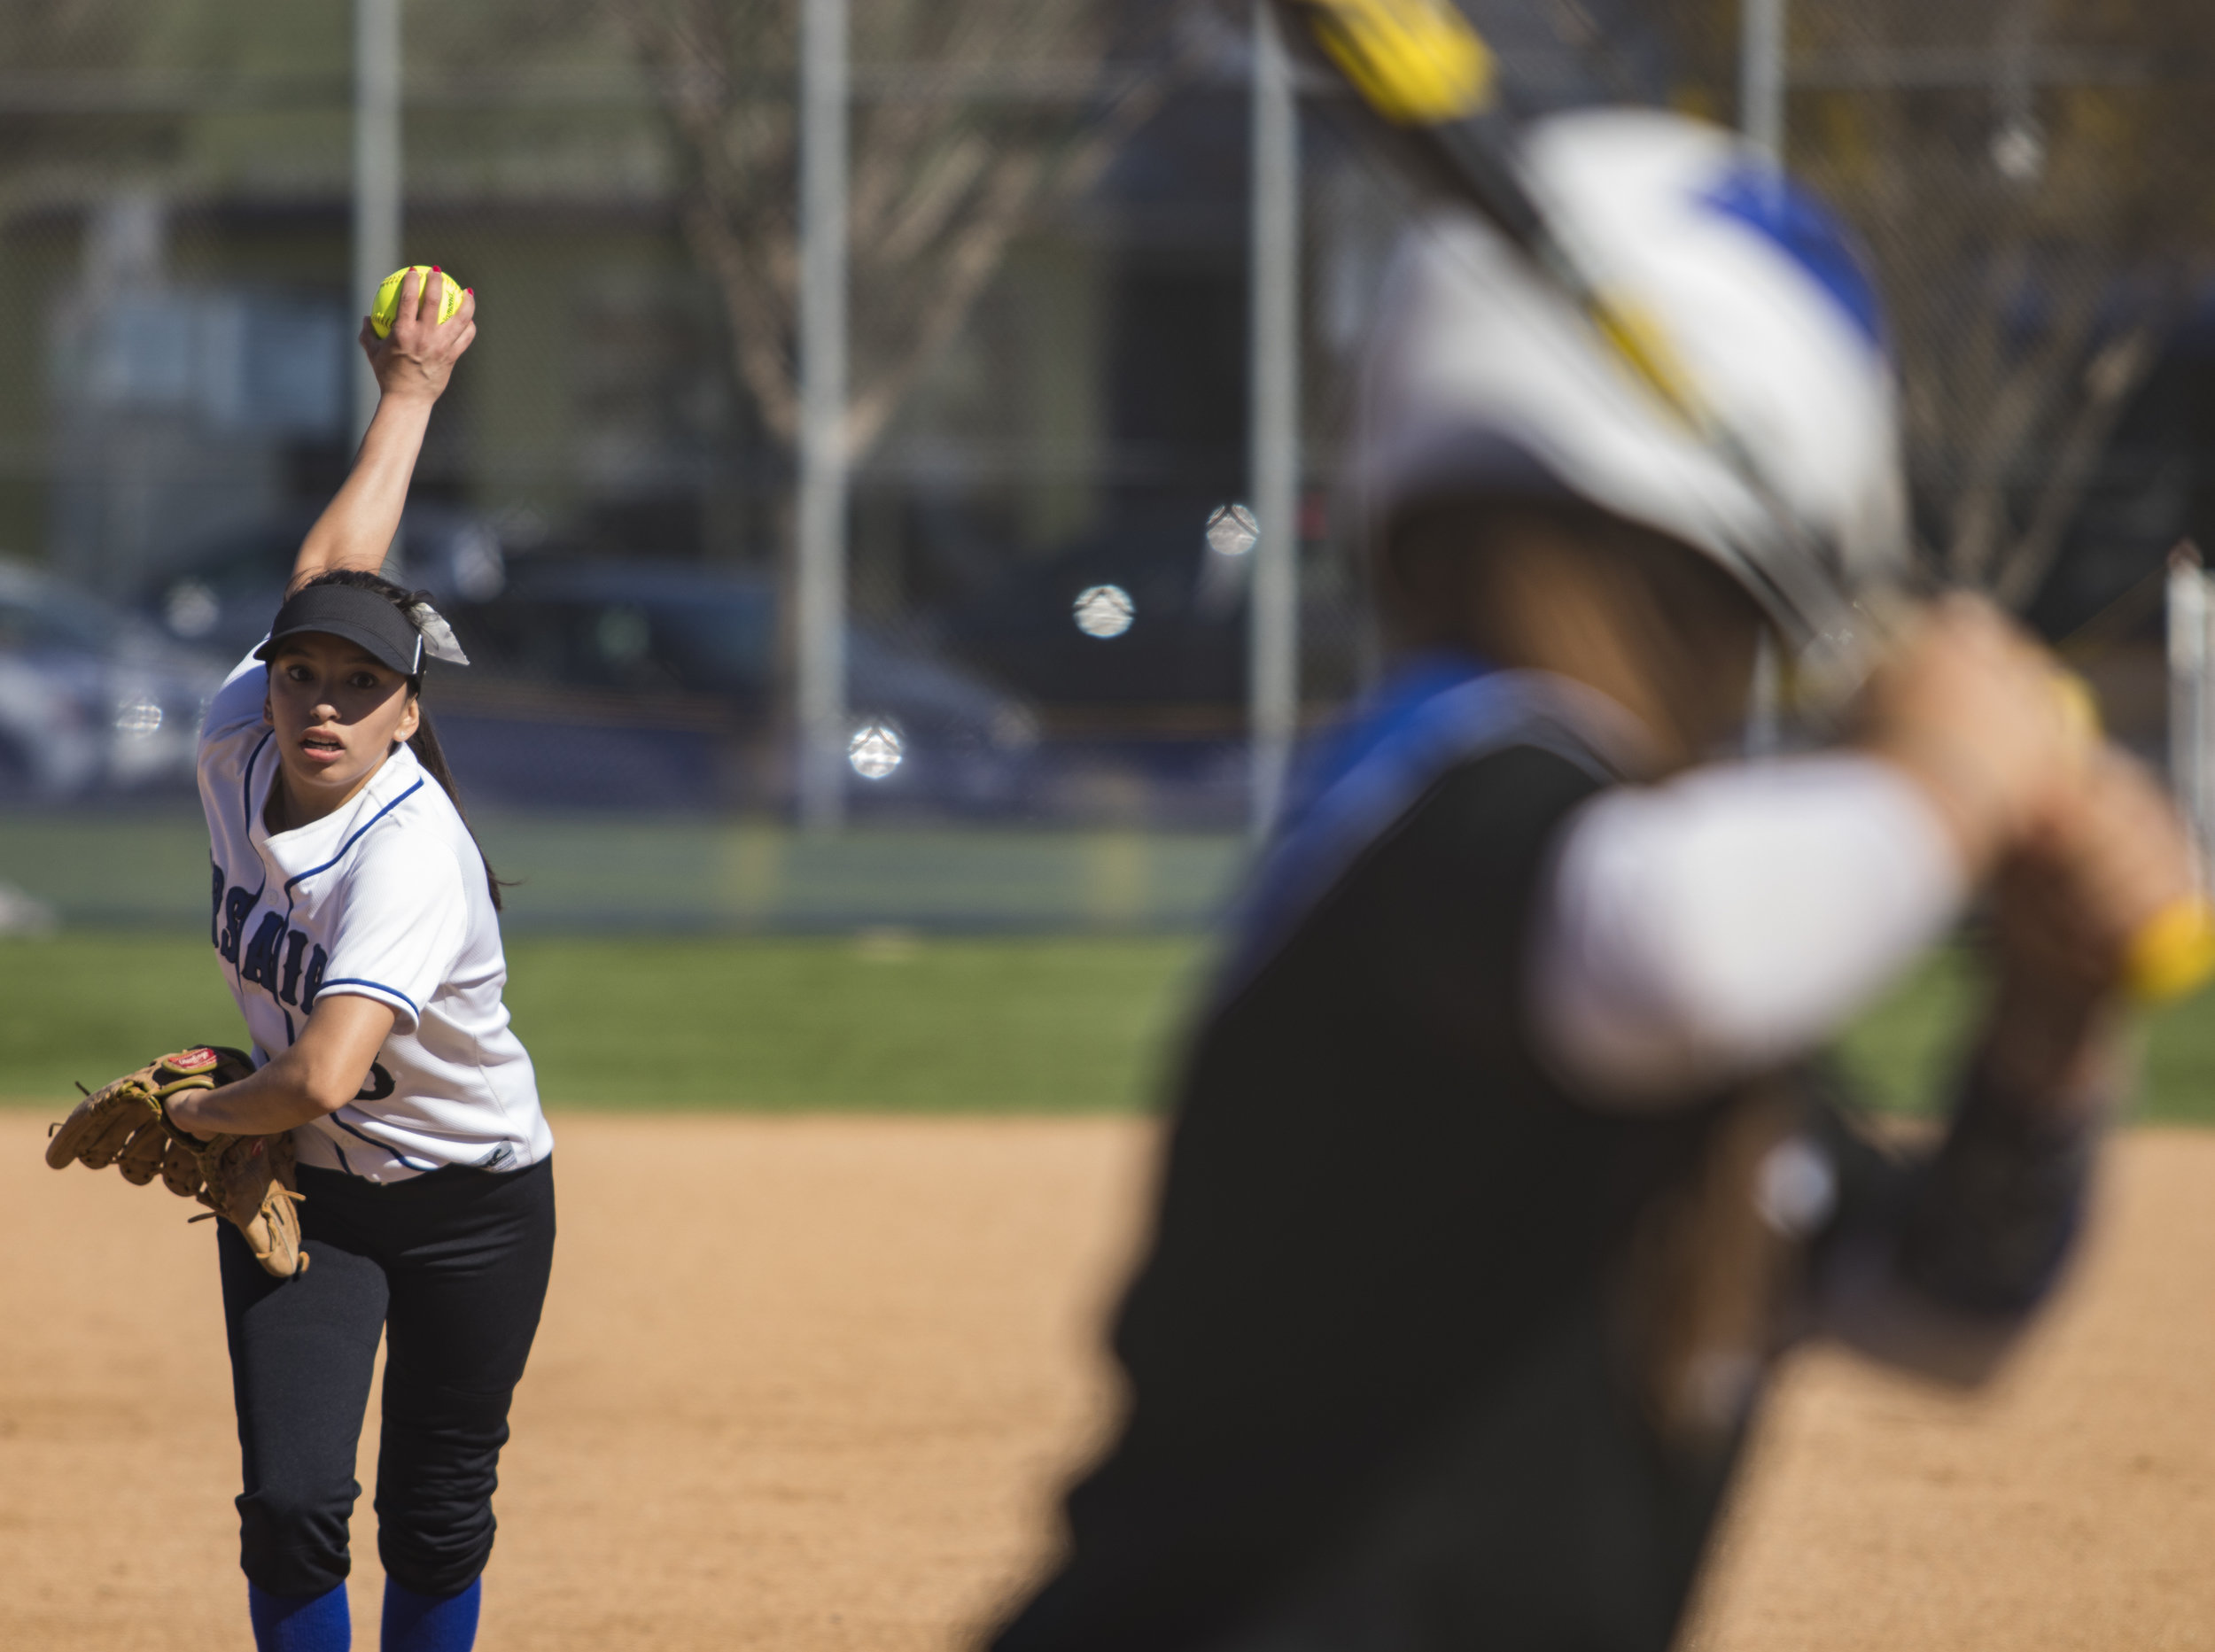 Ashley Nava pitching for The Santa Monca Corsair during Tuesday, March 27, 2018, game against the Allan Hancock Bulldogs at John Adams Middle School in Santa Monica, California. The Corsair fell 8-1 to the Bulldogs and are now 1-4 in their conference. (Brian Quiroz // Staff Writer)